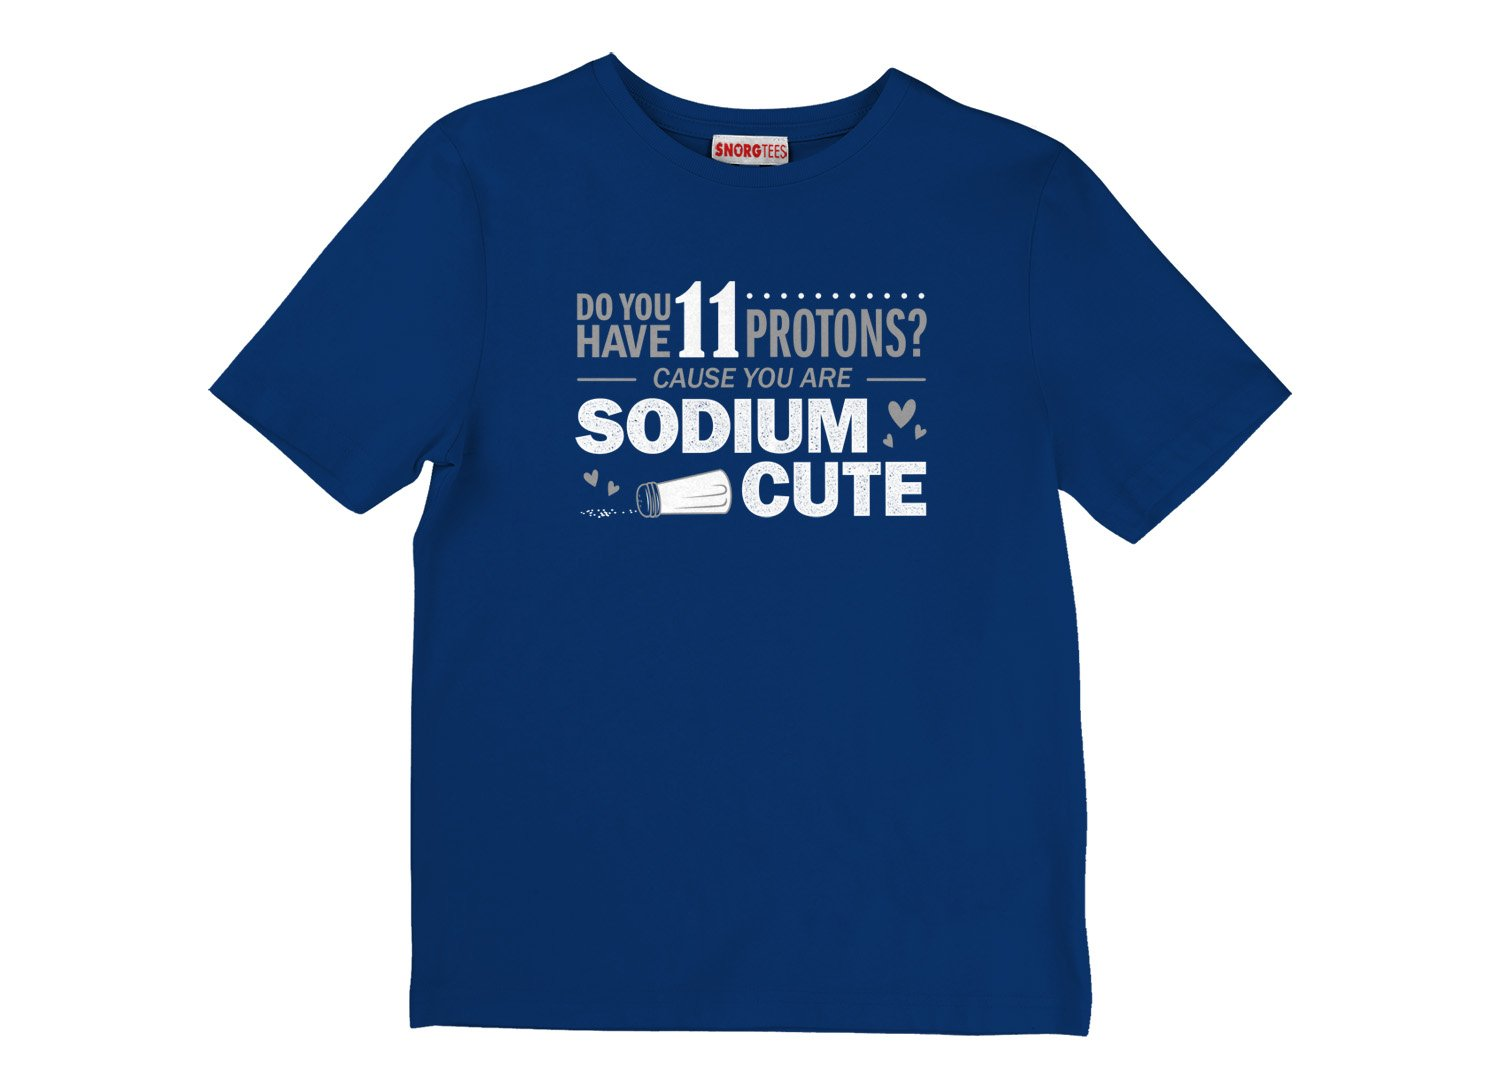 Do You Have 11 Protons? on Kids T-Shirt